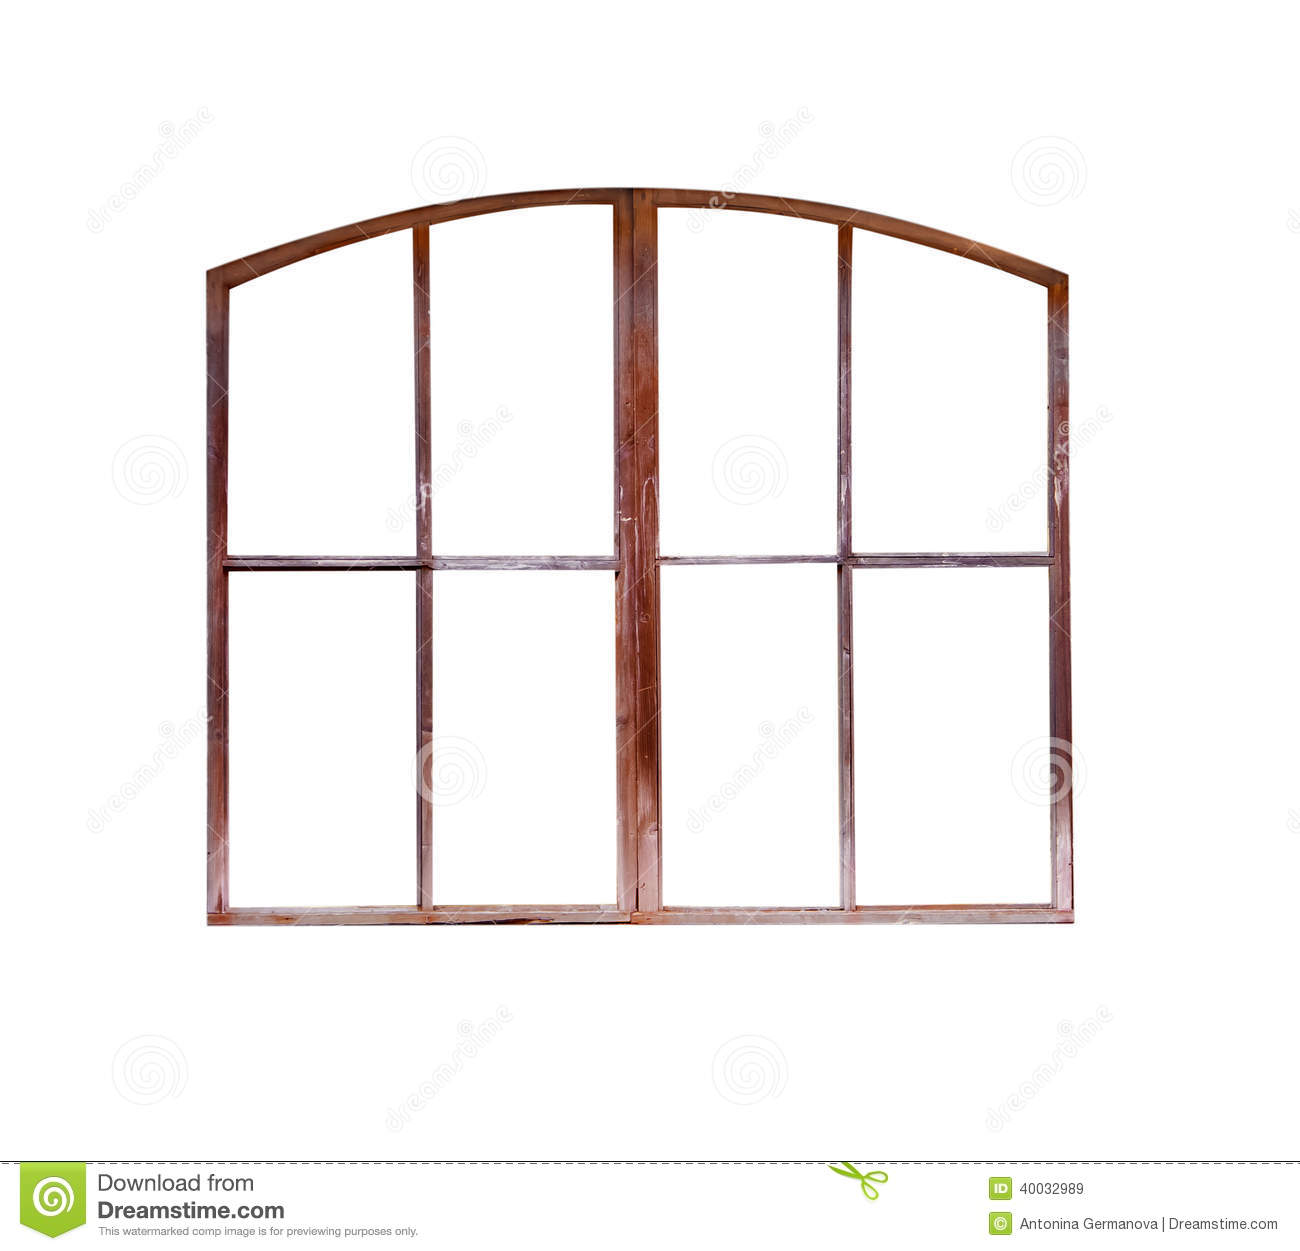 the old window frame isolated